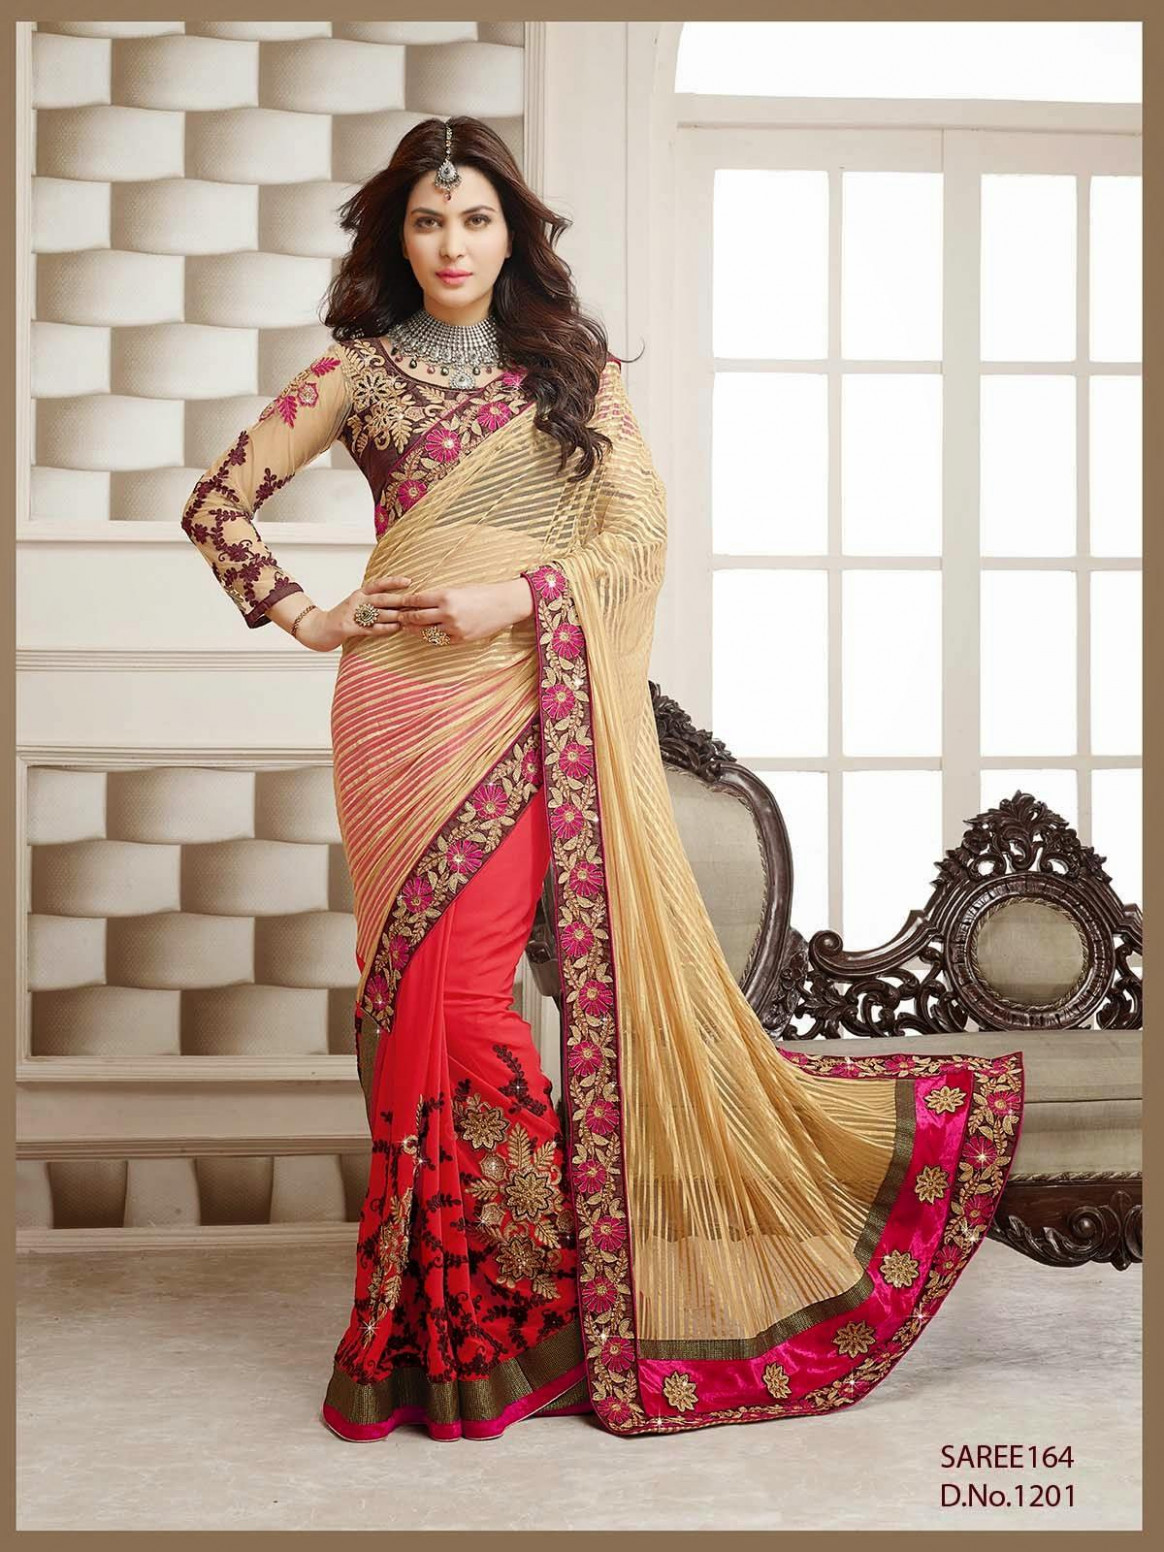 Latest Bridesmaid Saree Designs-20 New Styles to try in 2016